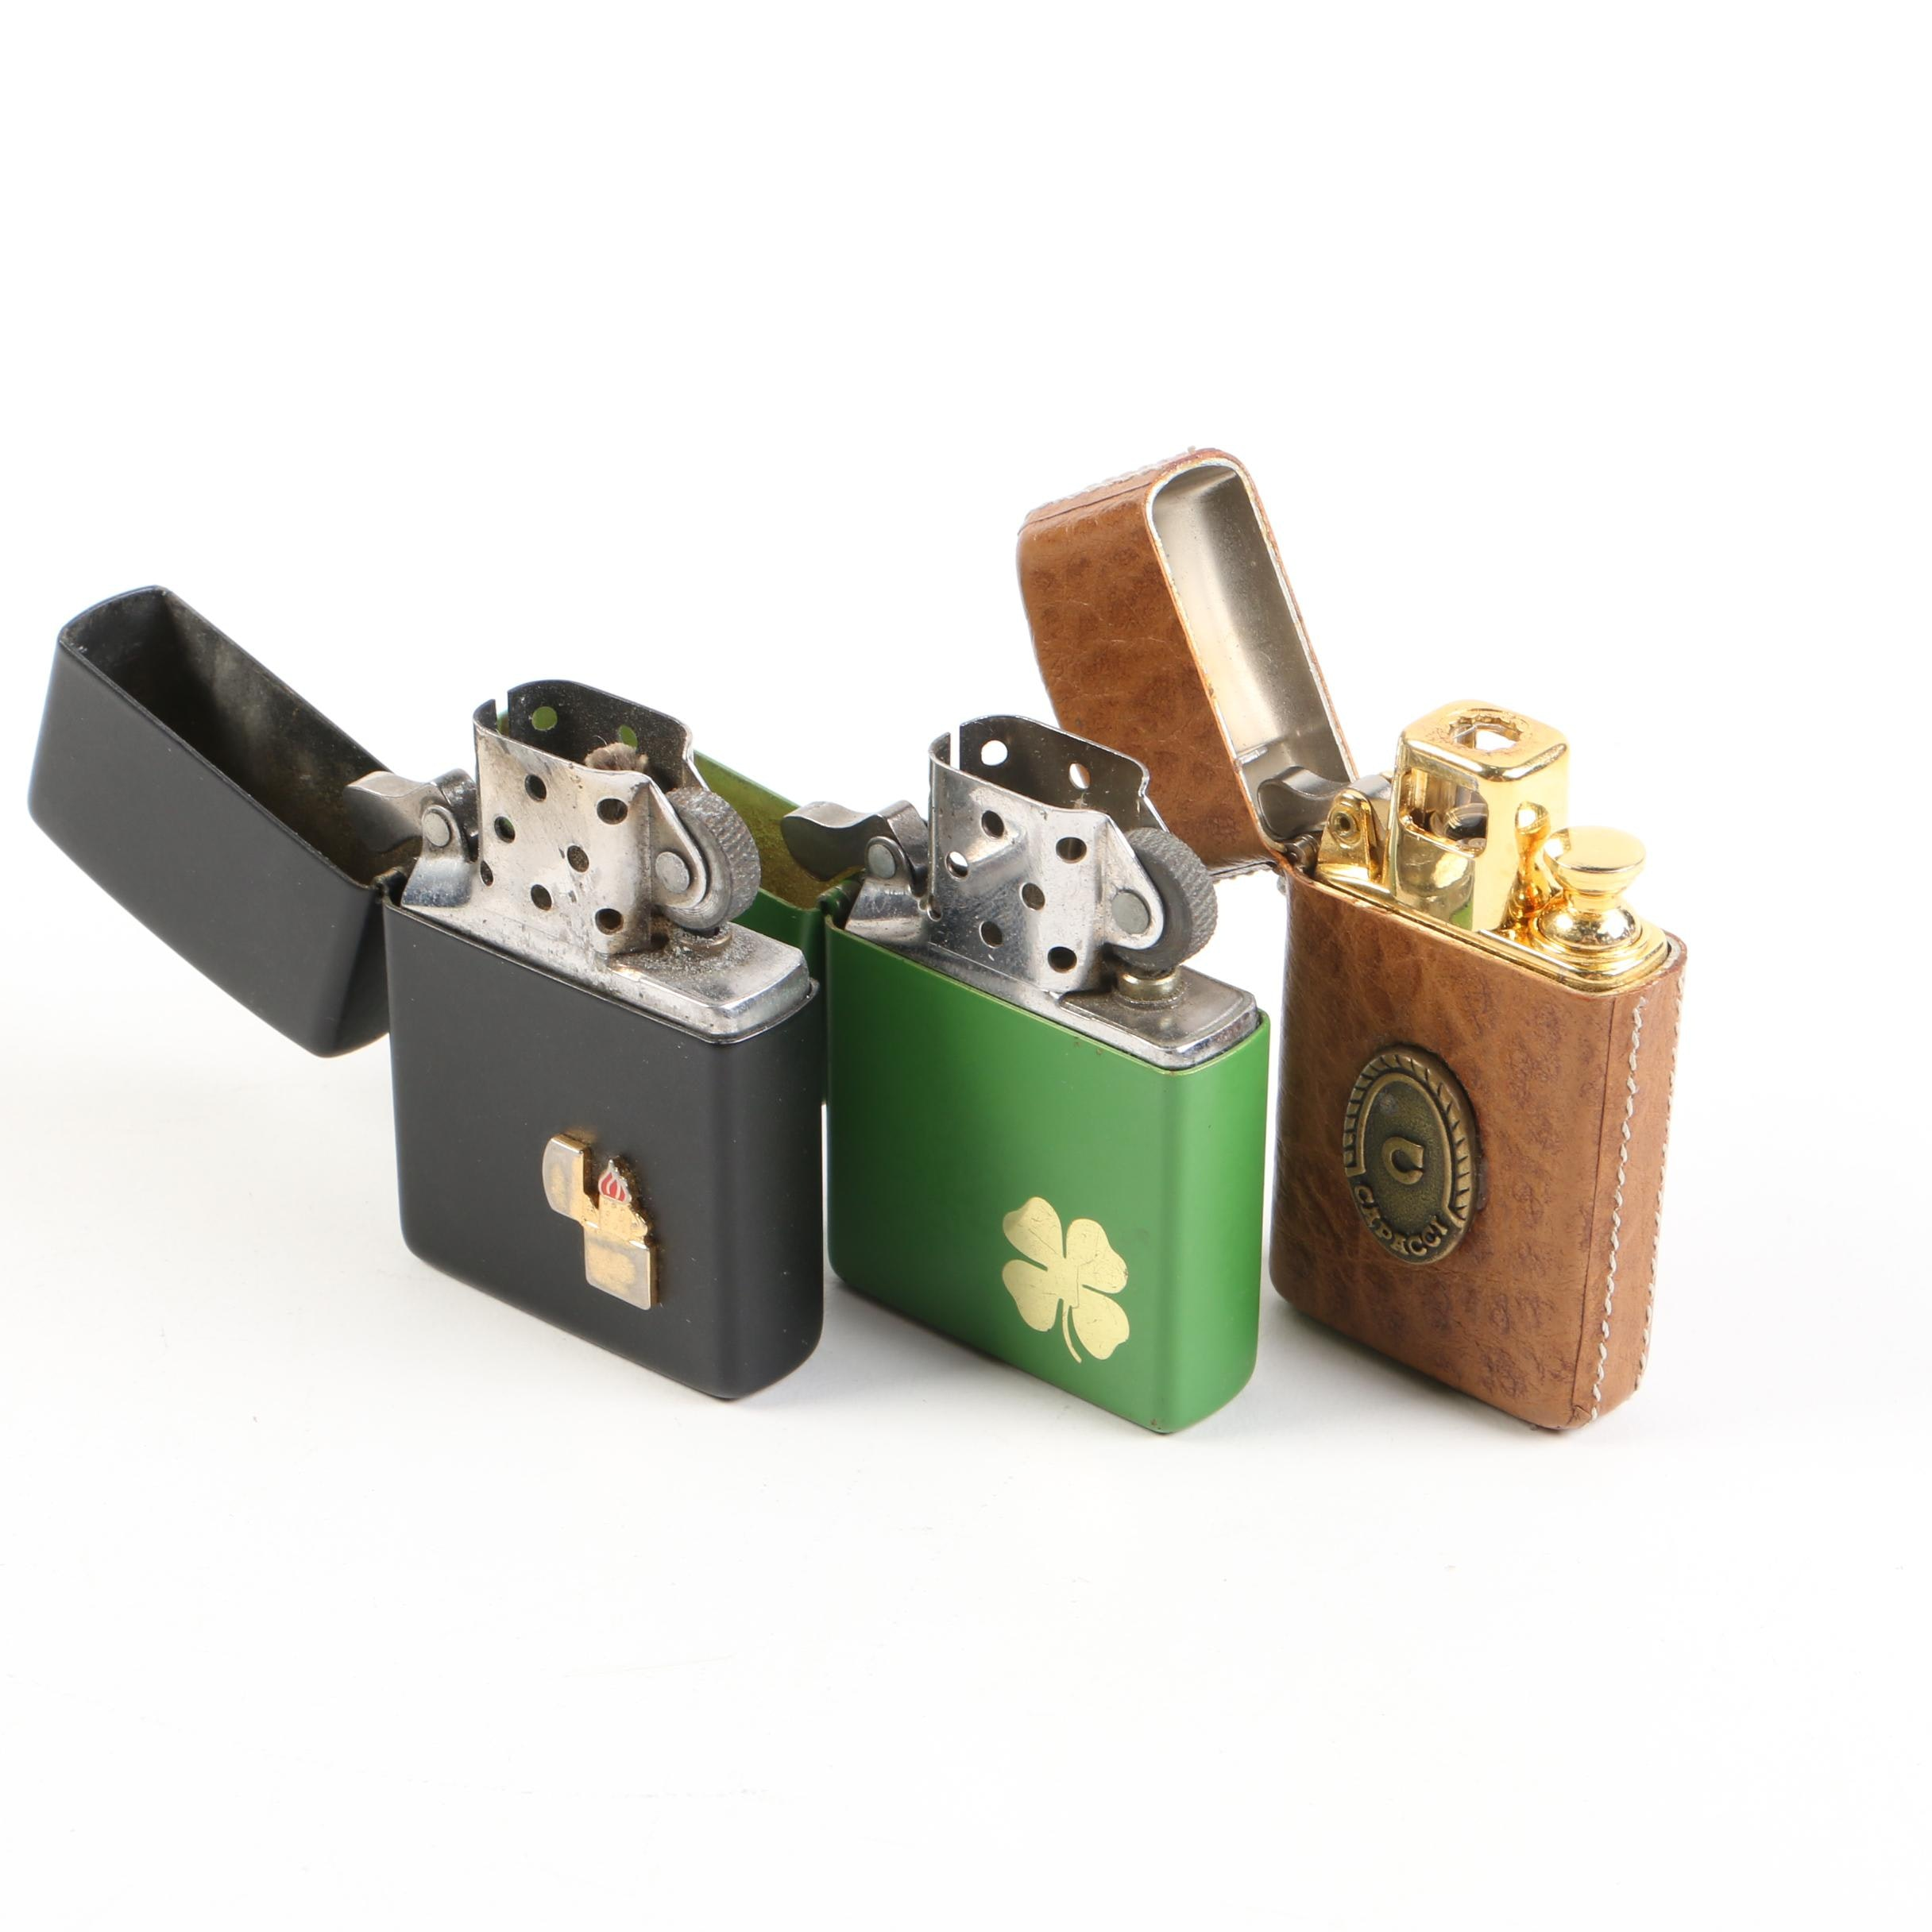 Zippo and Capucci Lighters